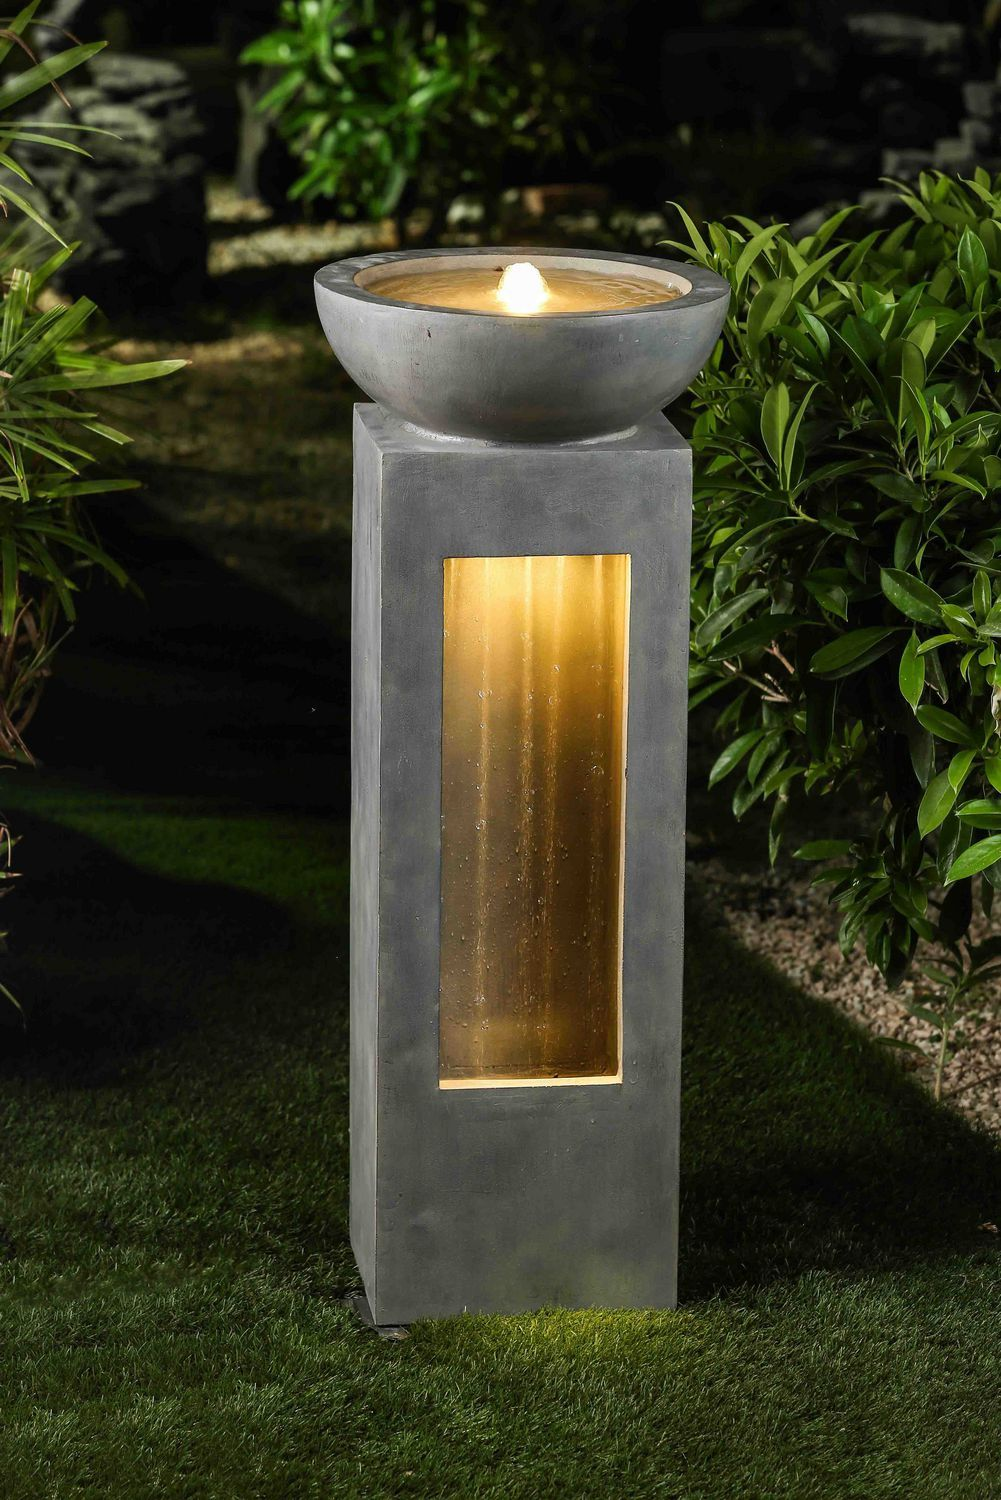 Led Lights At Walmart Garden Fountain With Led Light Walmart Canada Home Ideas